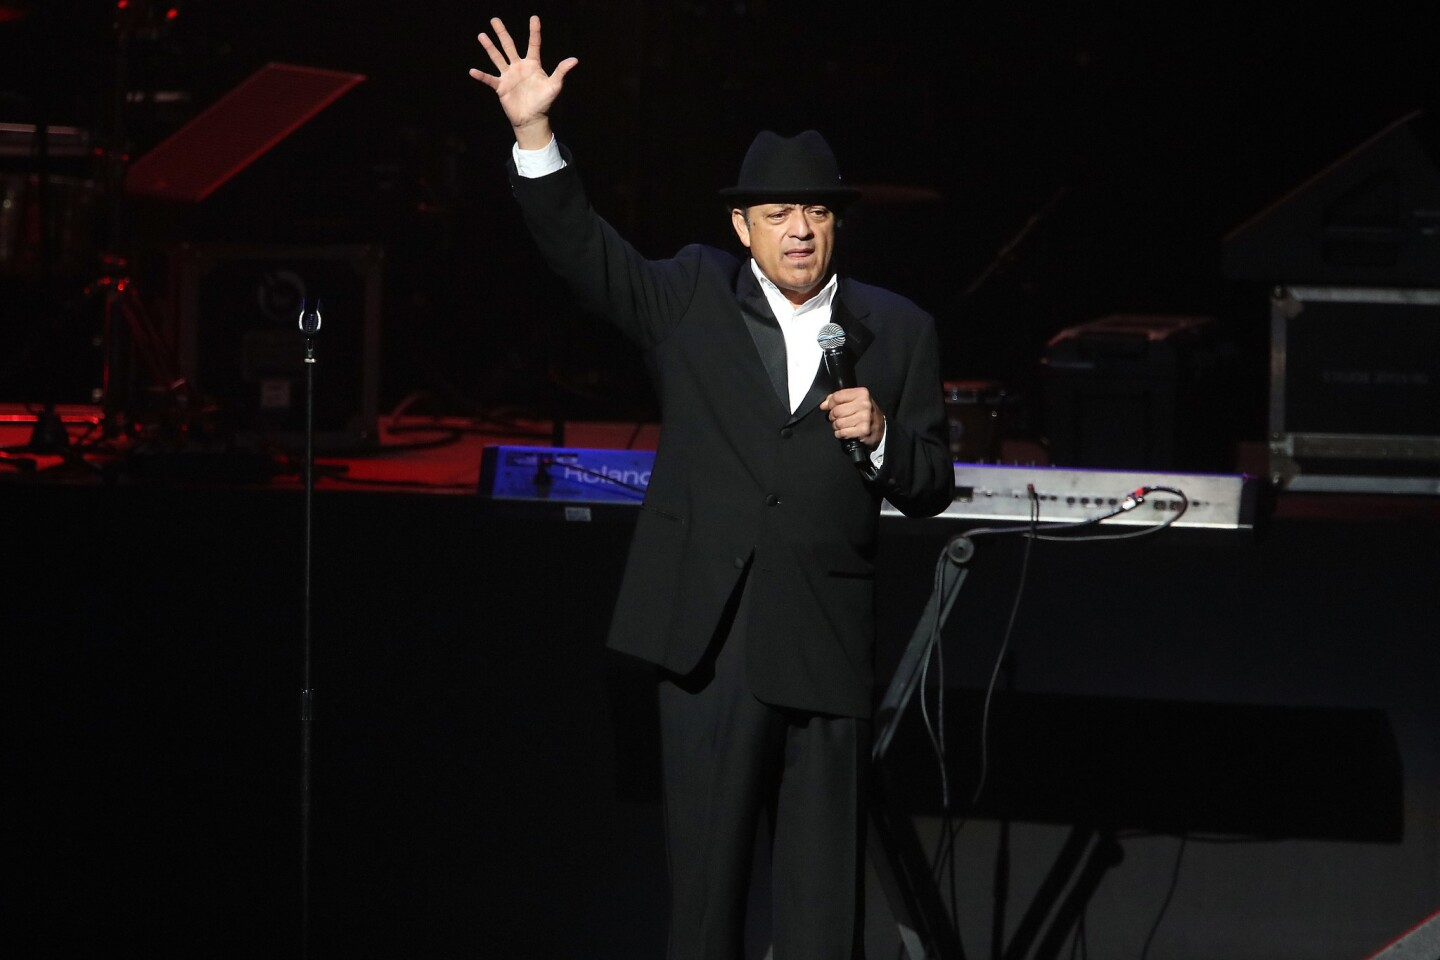 Paul Rodriguez performs onstage during the The Conga Room's 20th Anniversary Salsa Extravaganza at the Microsoft Theater on February 01, 2018 in Los Angeles, CA. (Photo by © Fanny Garcia/DDPixels.com)